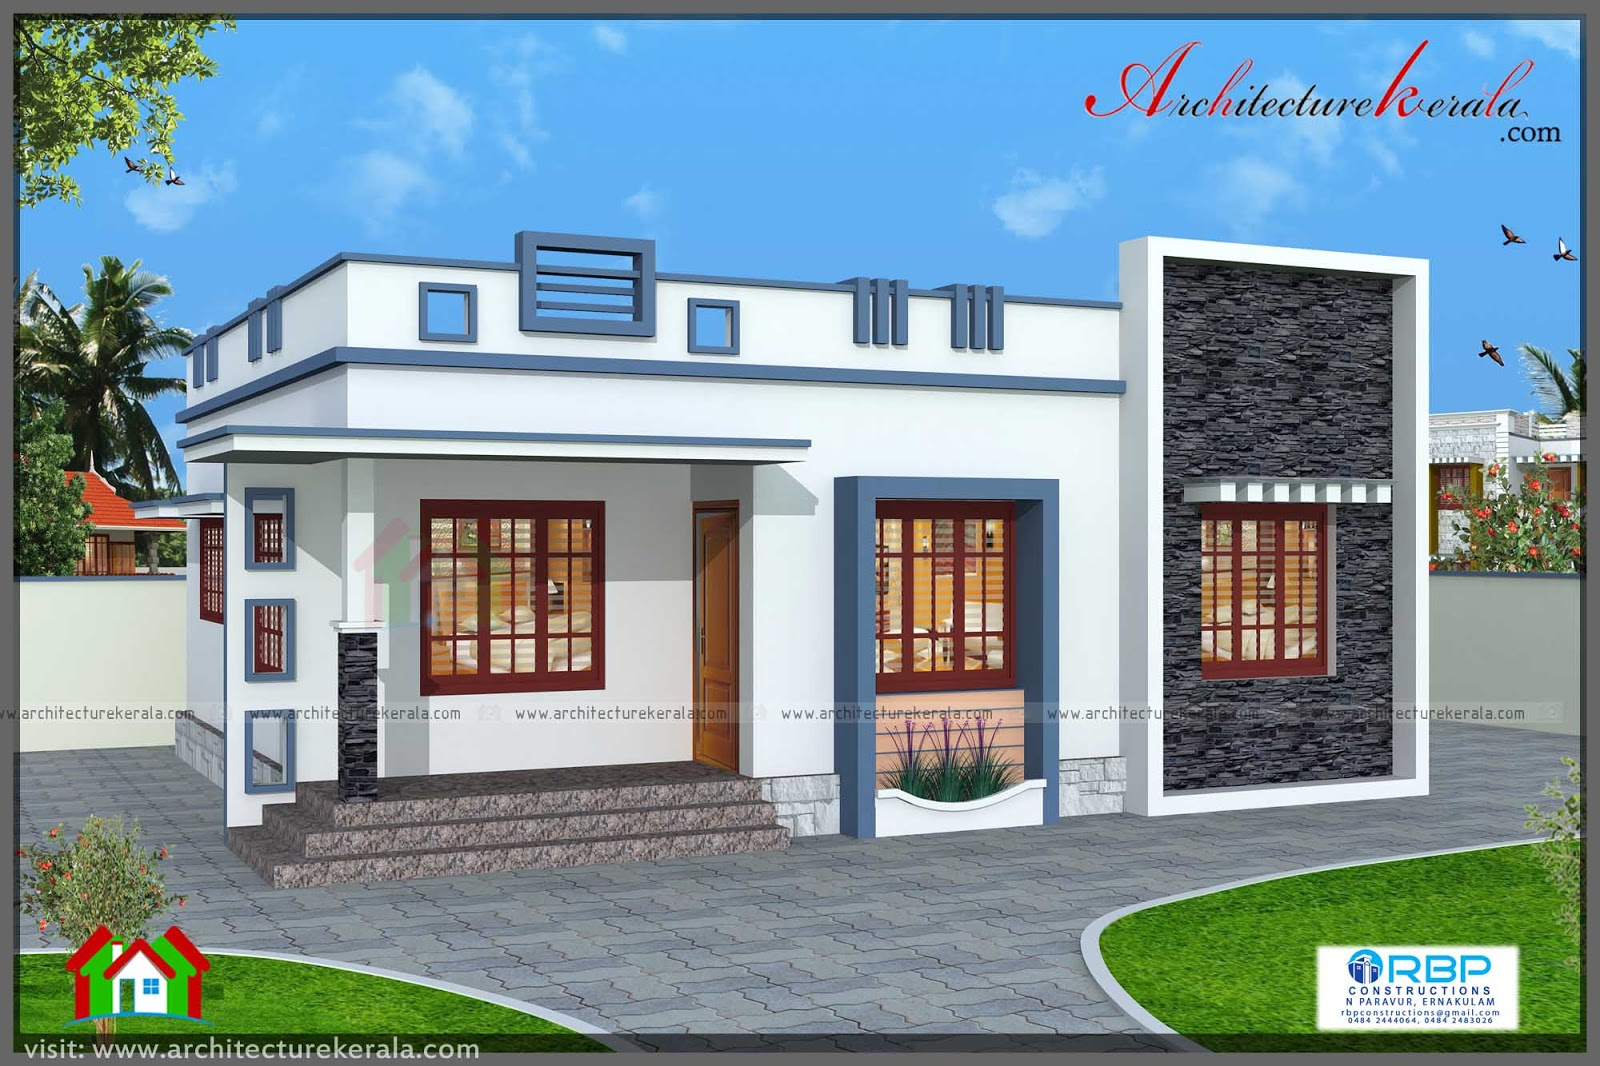 760 square feet 3 bedroom house plan architecture kerala for 3 bedroom house photos